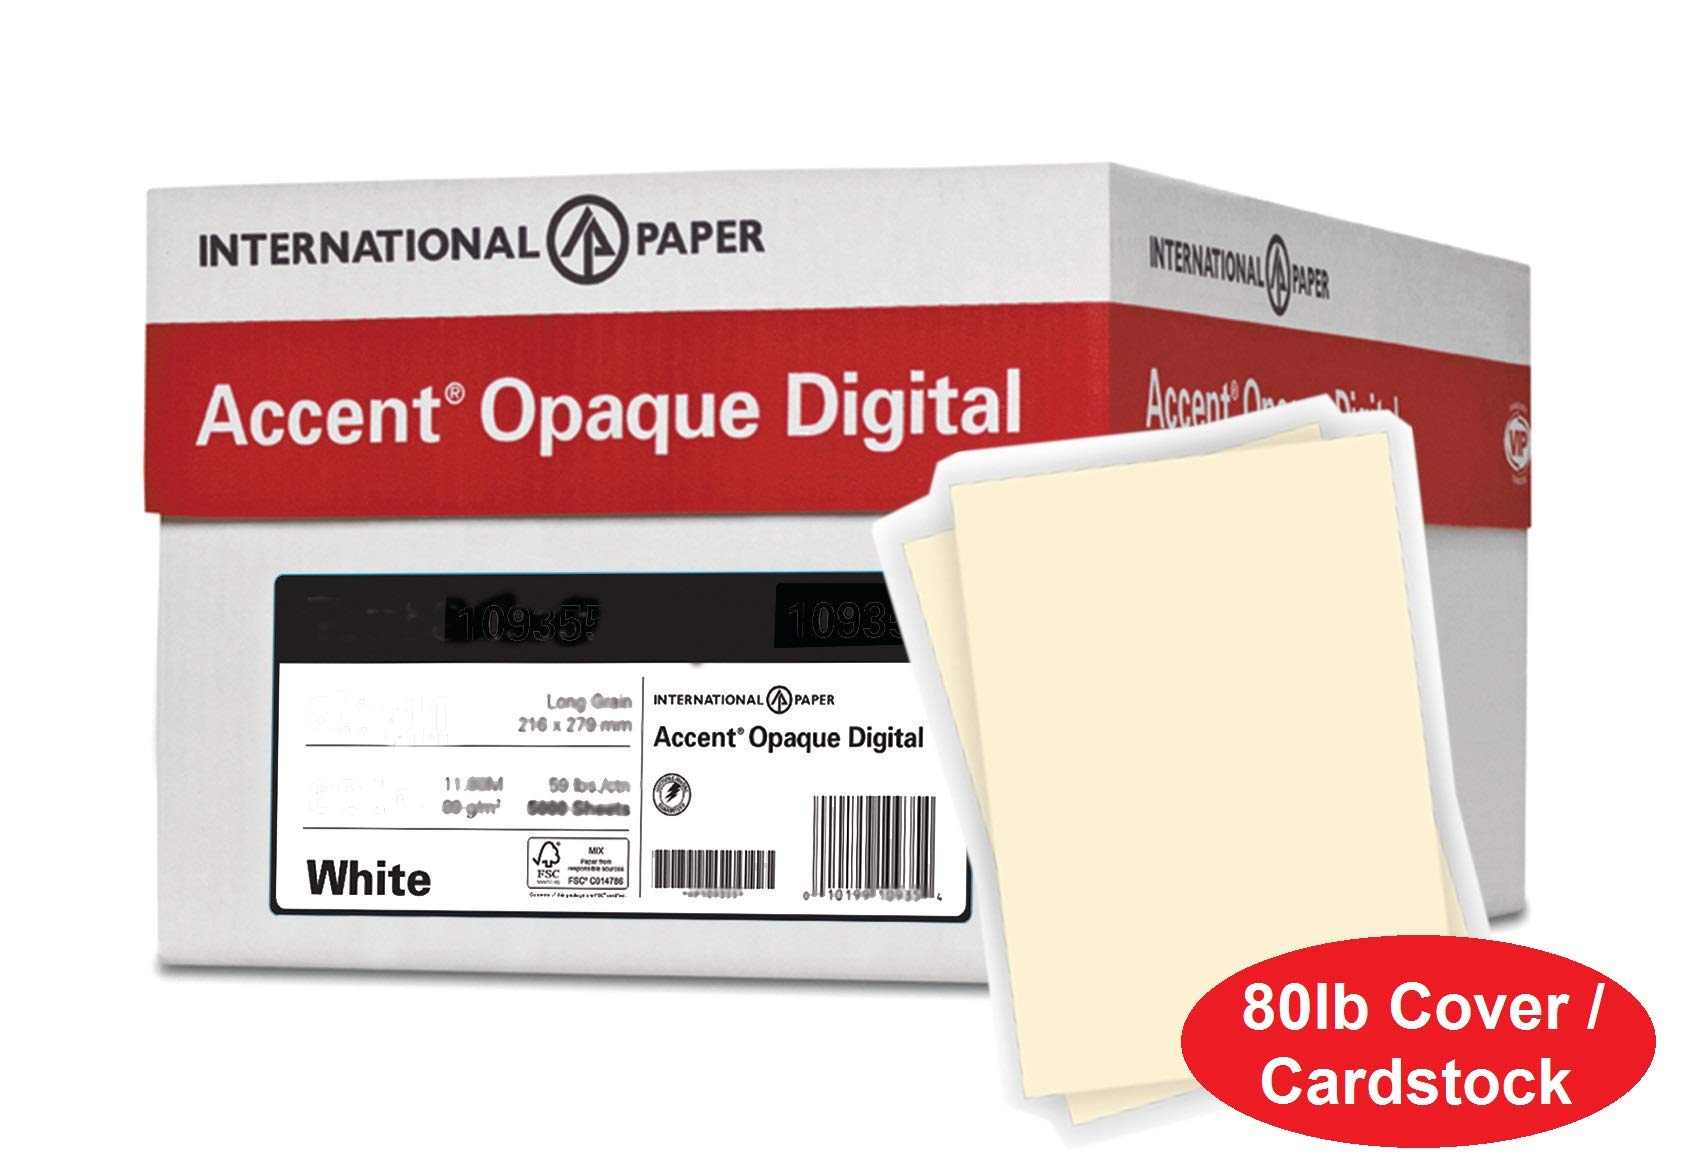 Accent Opaque Thick Cardstock Paper, Warm White Paper, 80lb Cover, 216 gsm, 8.5x11, 97 Bright, 8 Reams / 2,000 Sheets - Super Smooth, Heavy Card Stock (121978C) by Accent